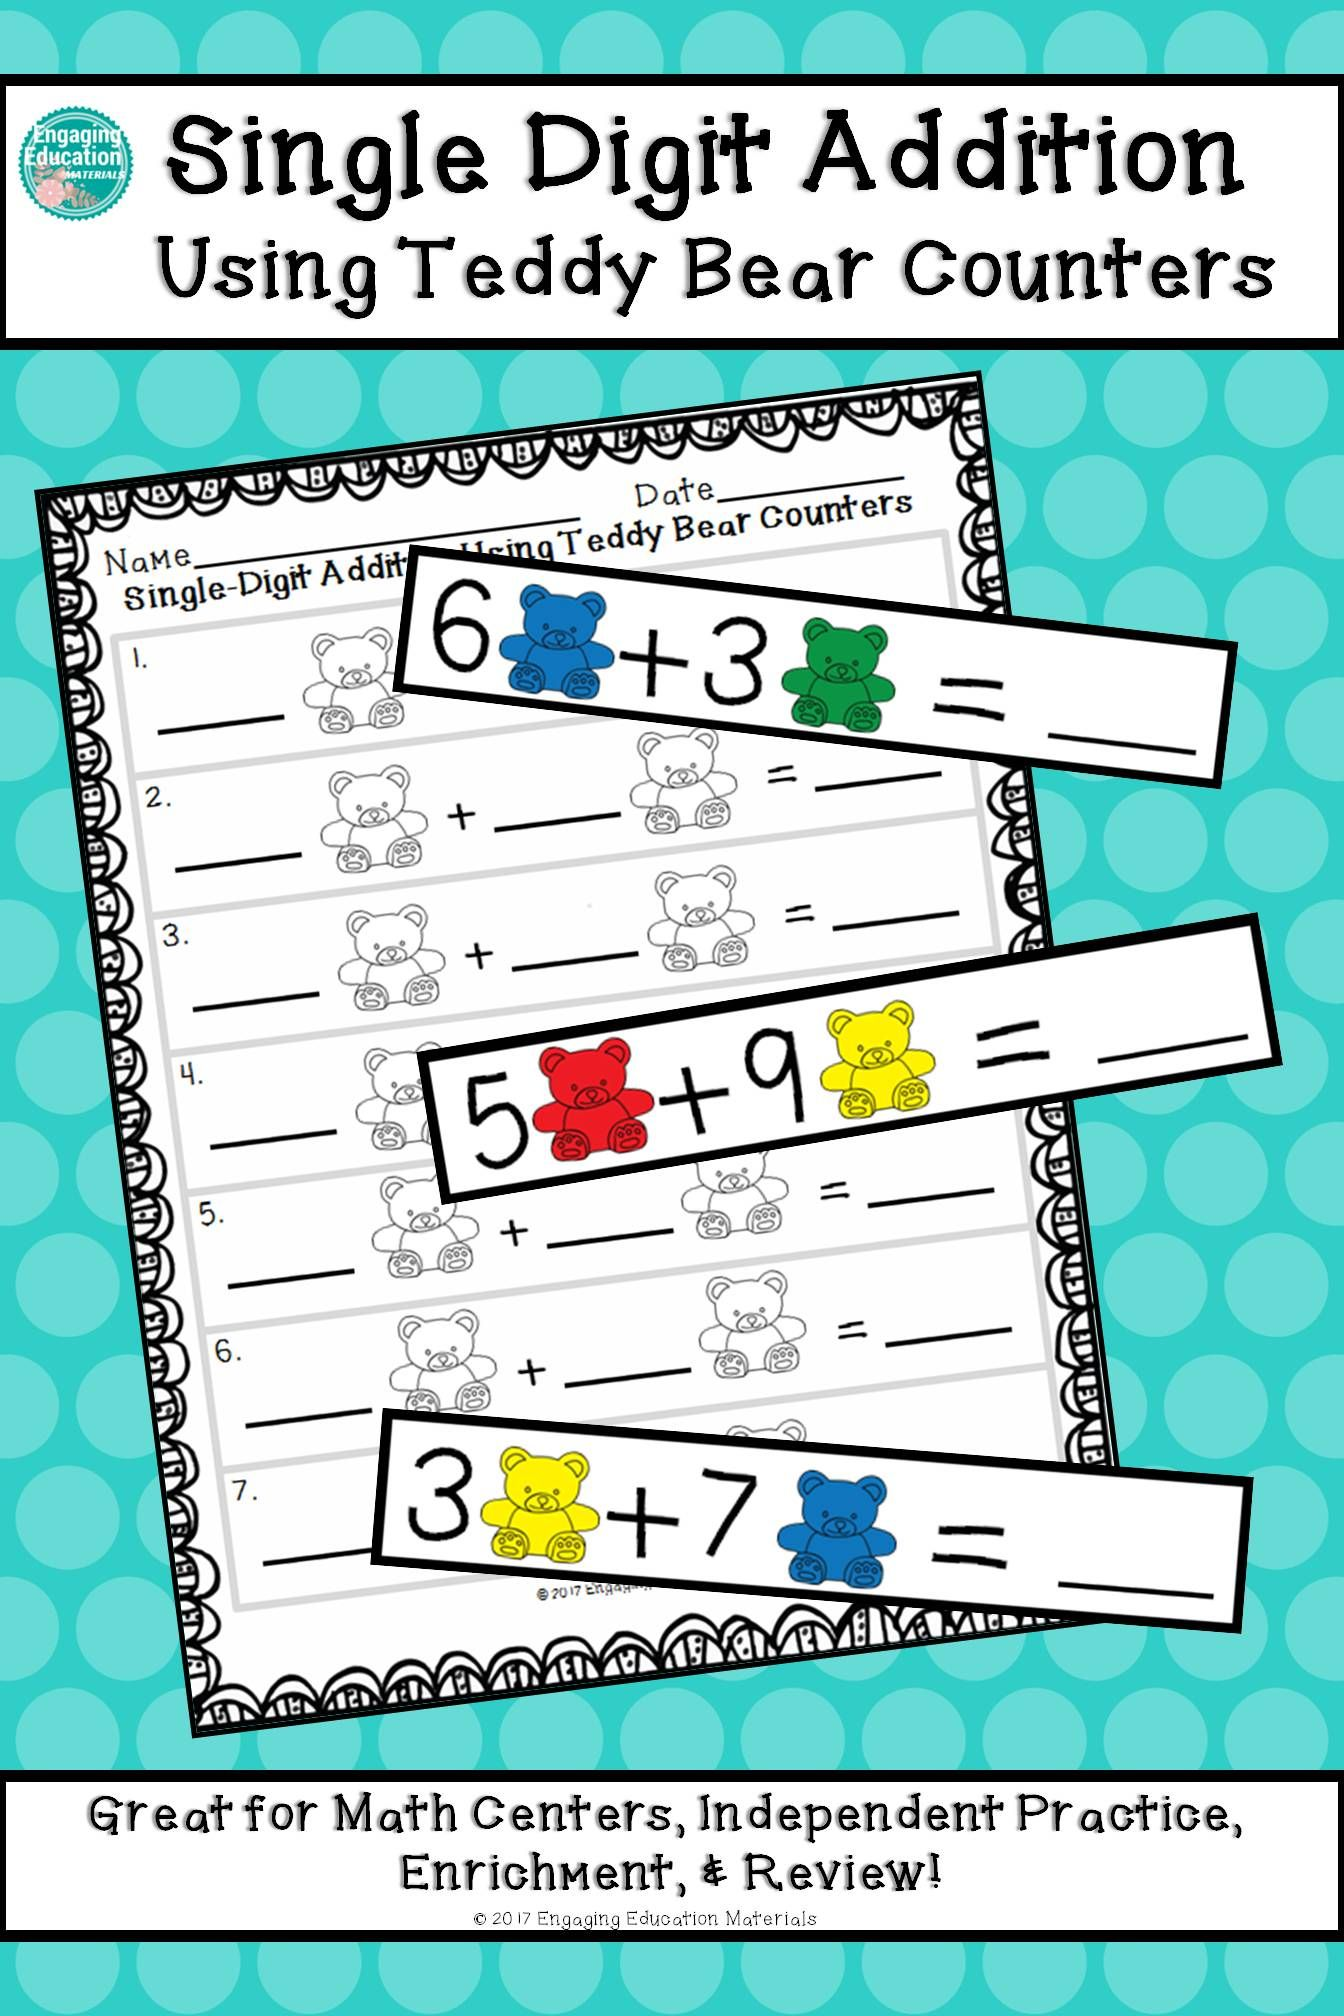 Single Digit Addition Using Teddy Bear Counters